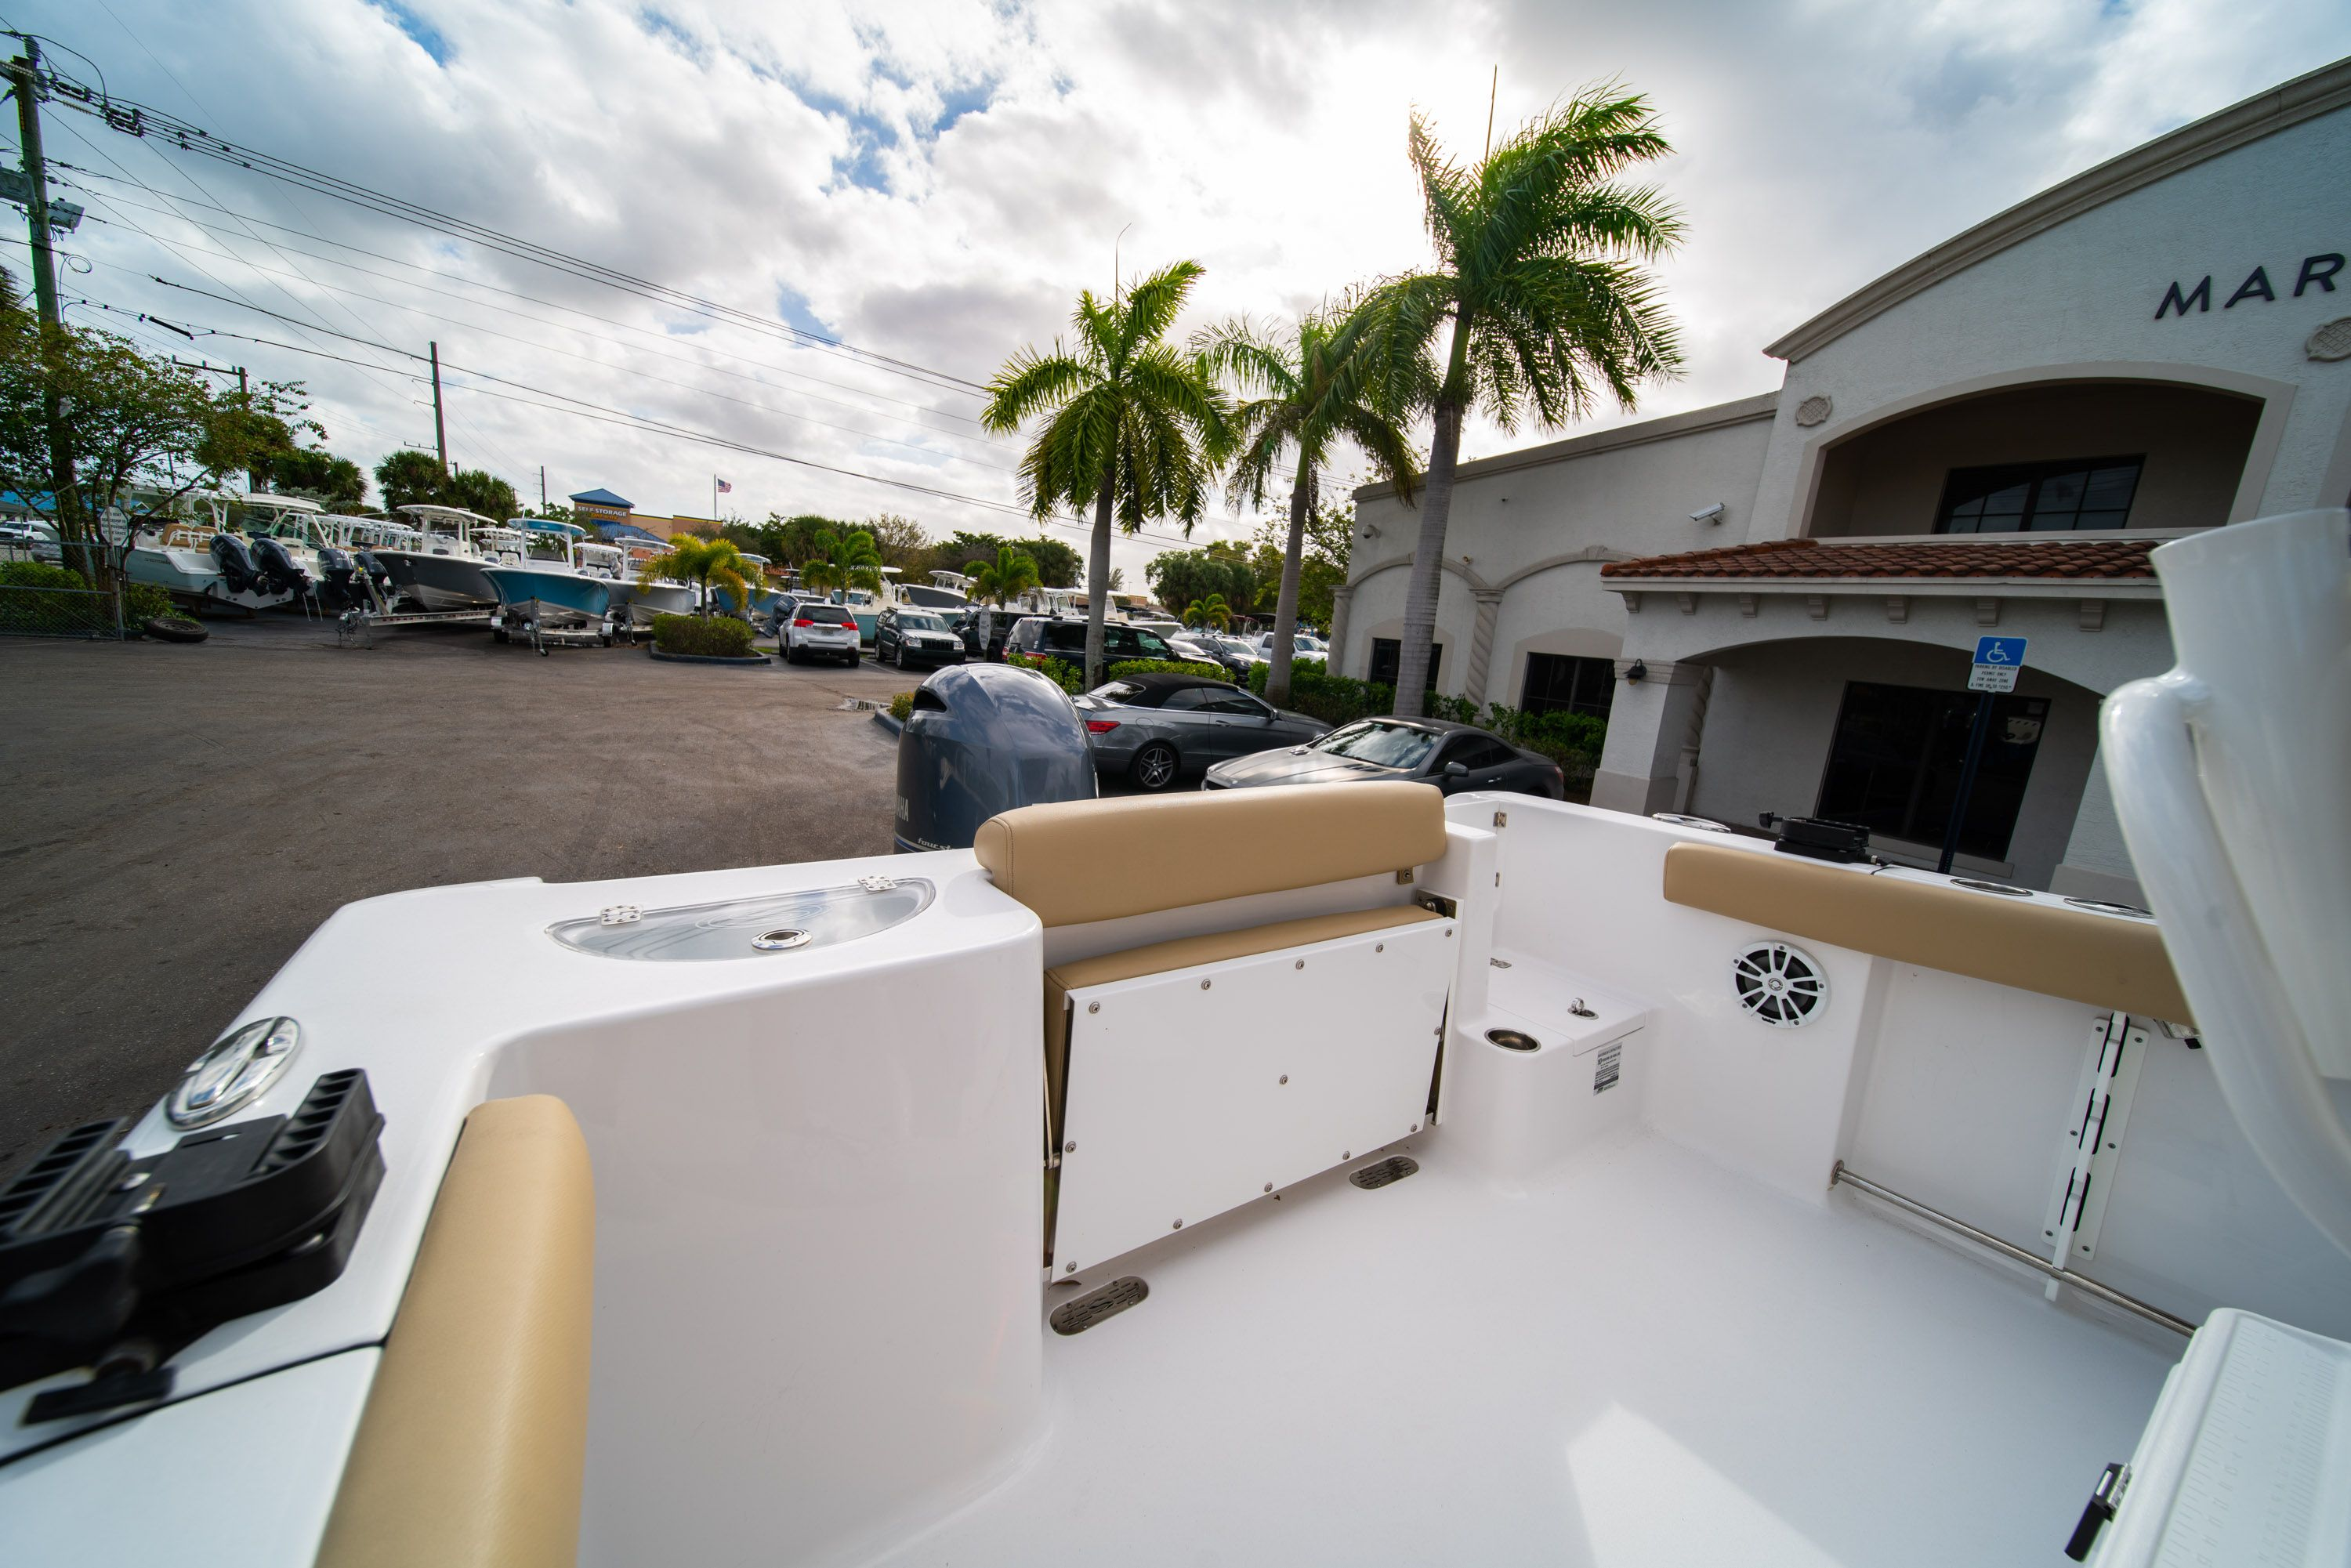 Thumbnail 11 for Used 2018 Sportsman Open 232 Center Console boat for sale in West Palm Beach, FL